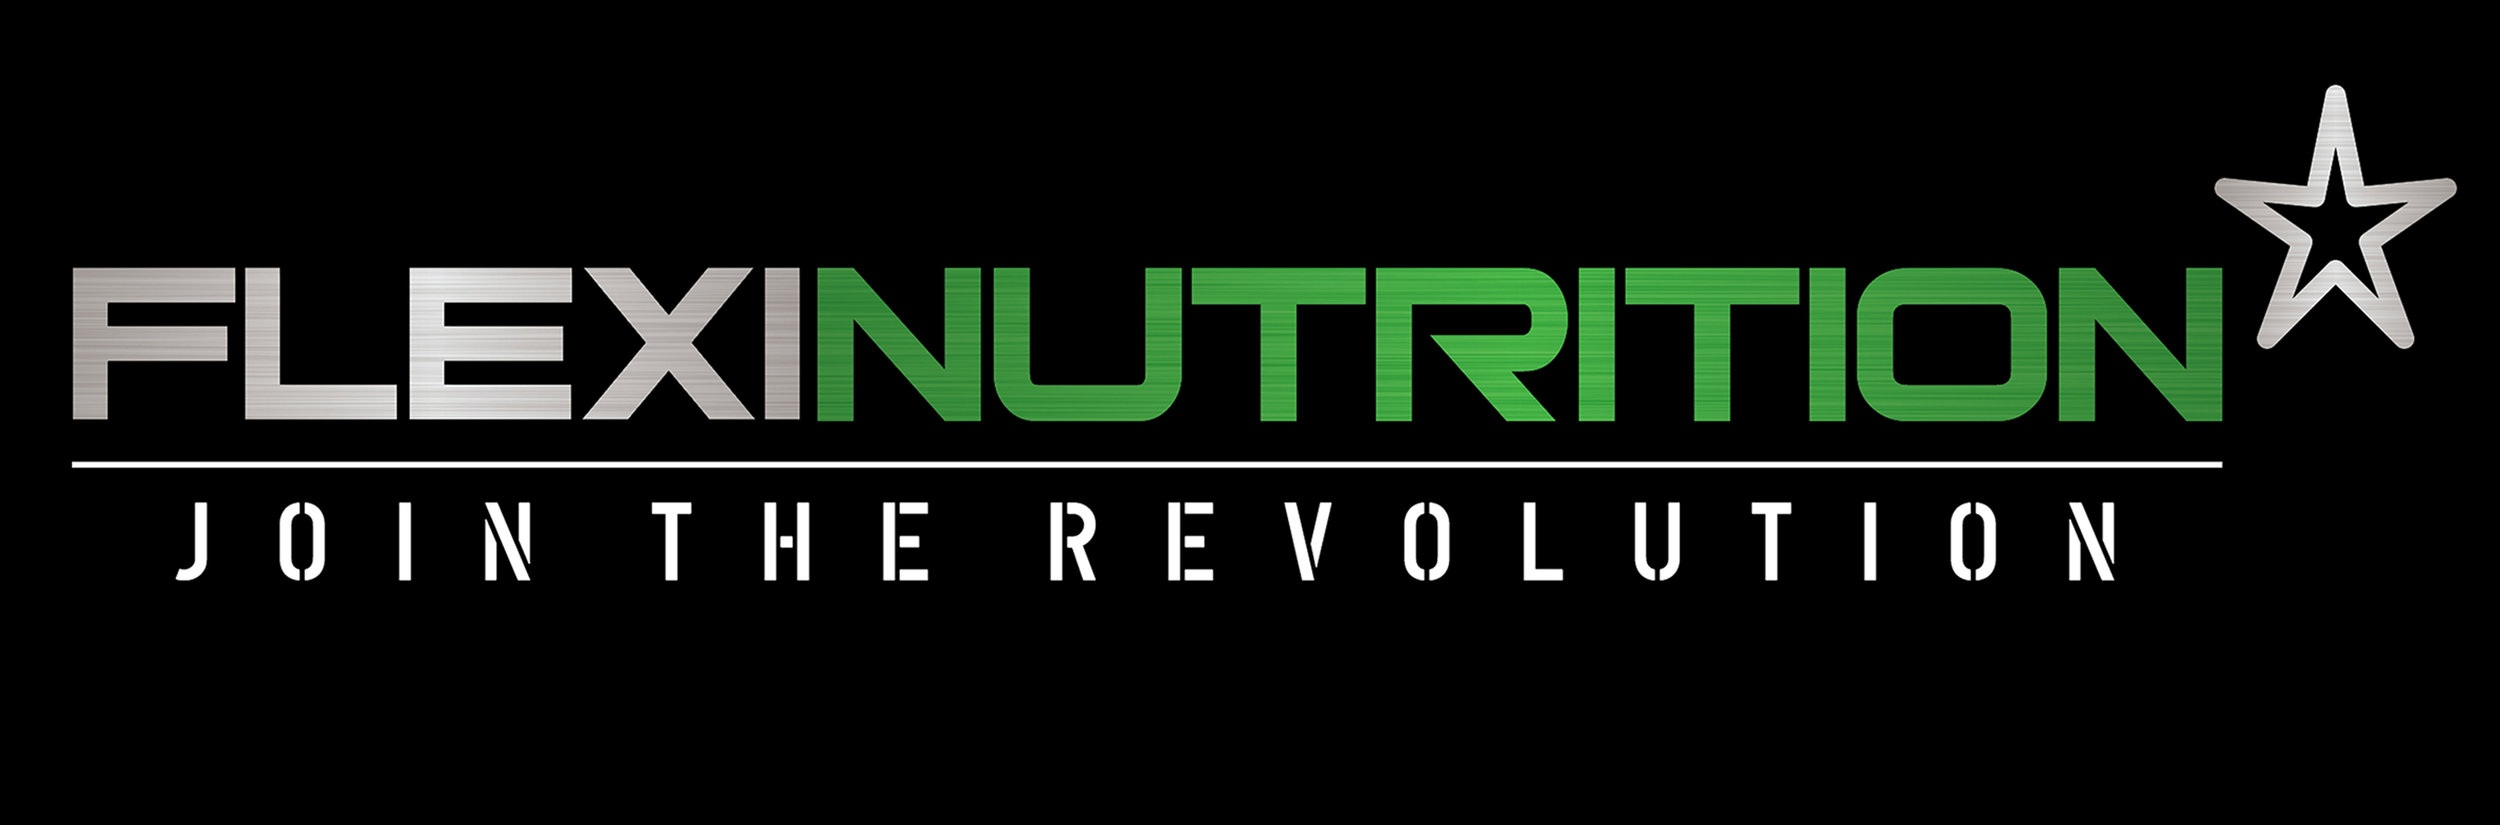 FlexiNutrition - Flexinutrition are an Irish owned sports nutrition brand. The purpose of every Flexi Nutrition product is to enhance athletic performance, strength and overall personal health and wellbeing – all without the use of banned substances. Only the best ingredients are used in our products to ensure the highest quality.